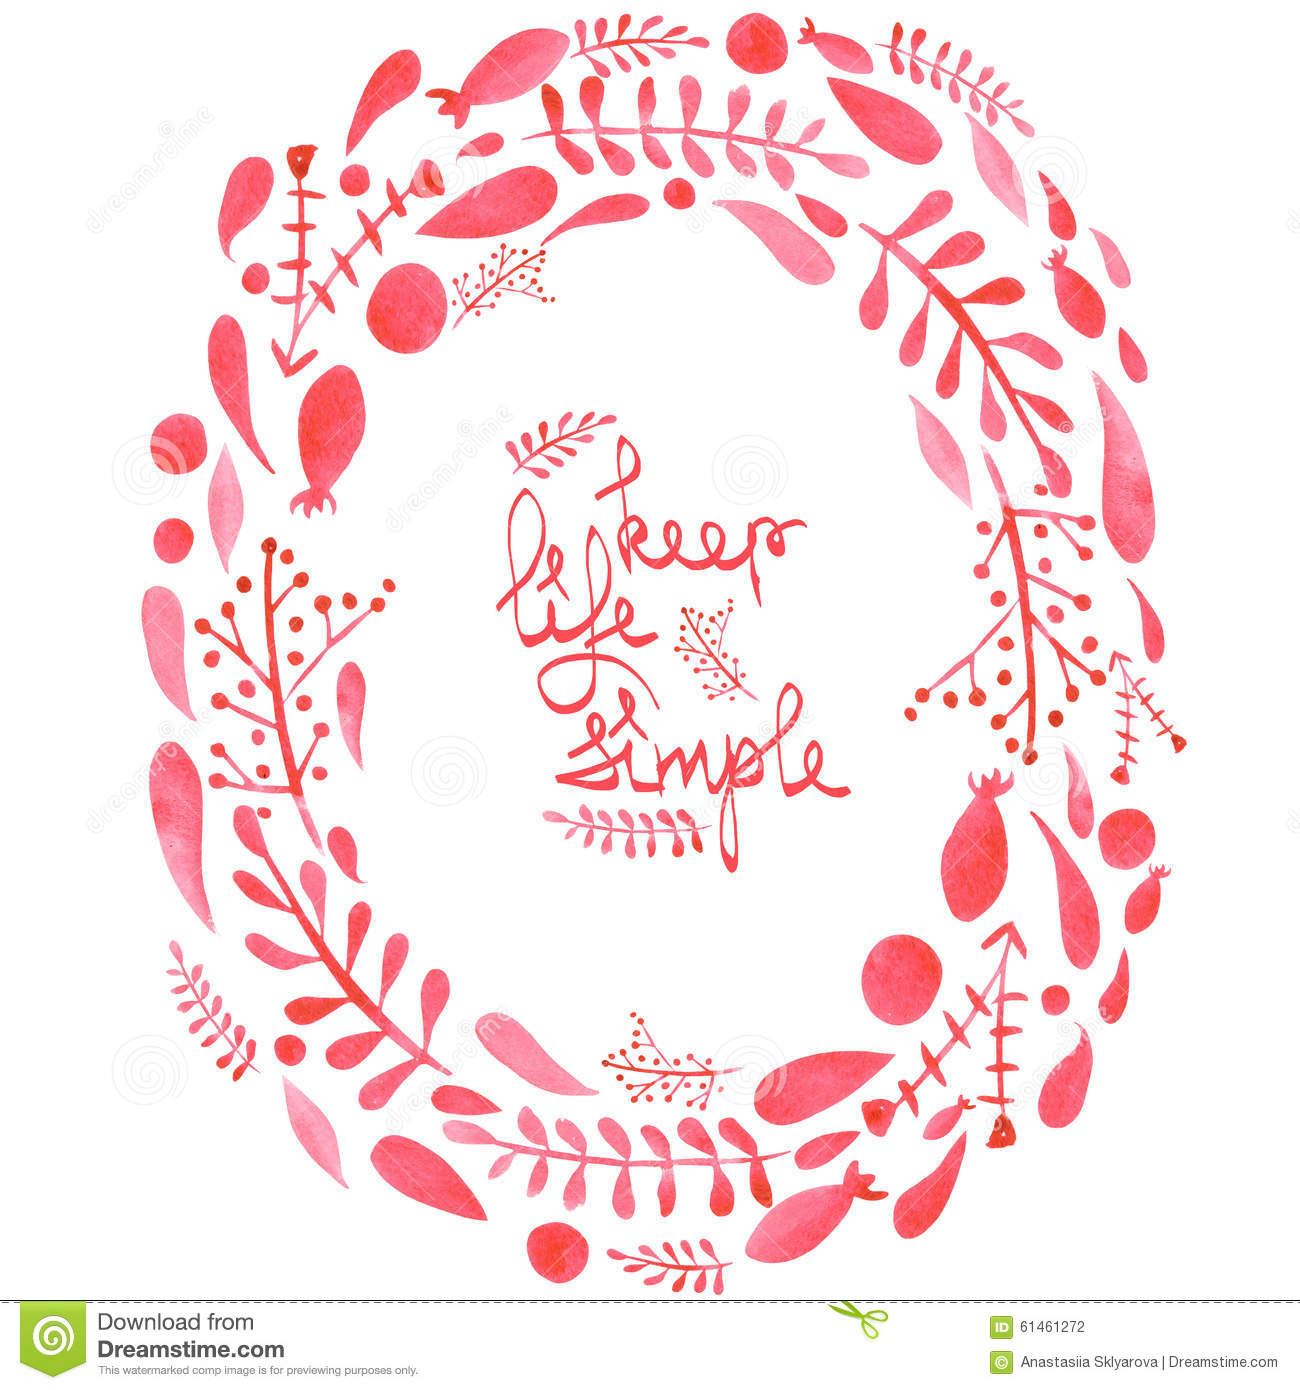 Frame border, wreath with watercolor red abstract leaves and branches